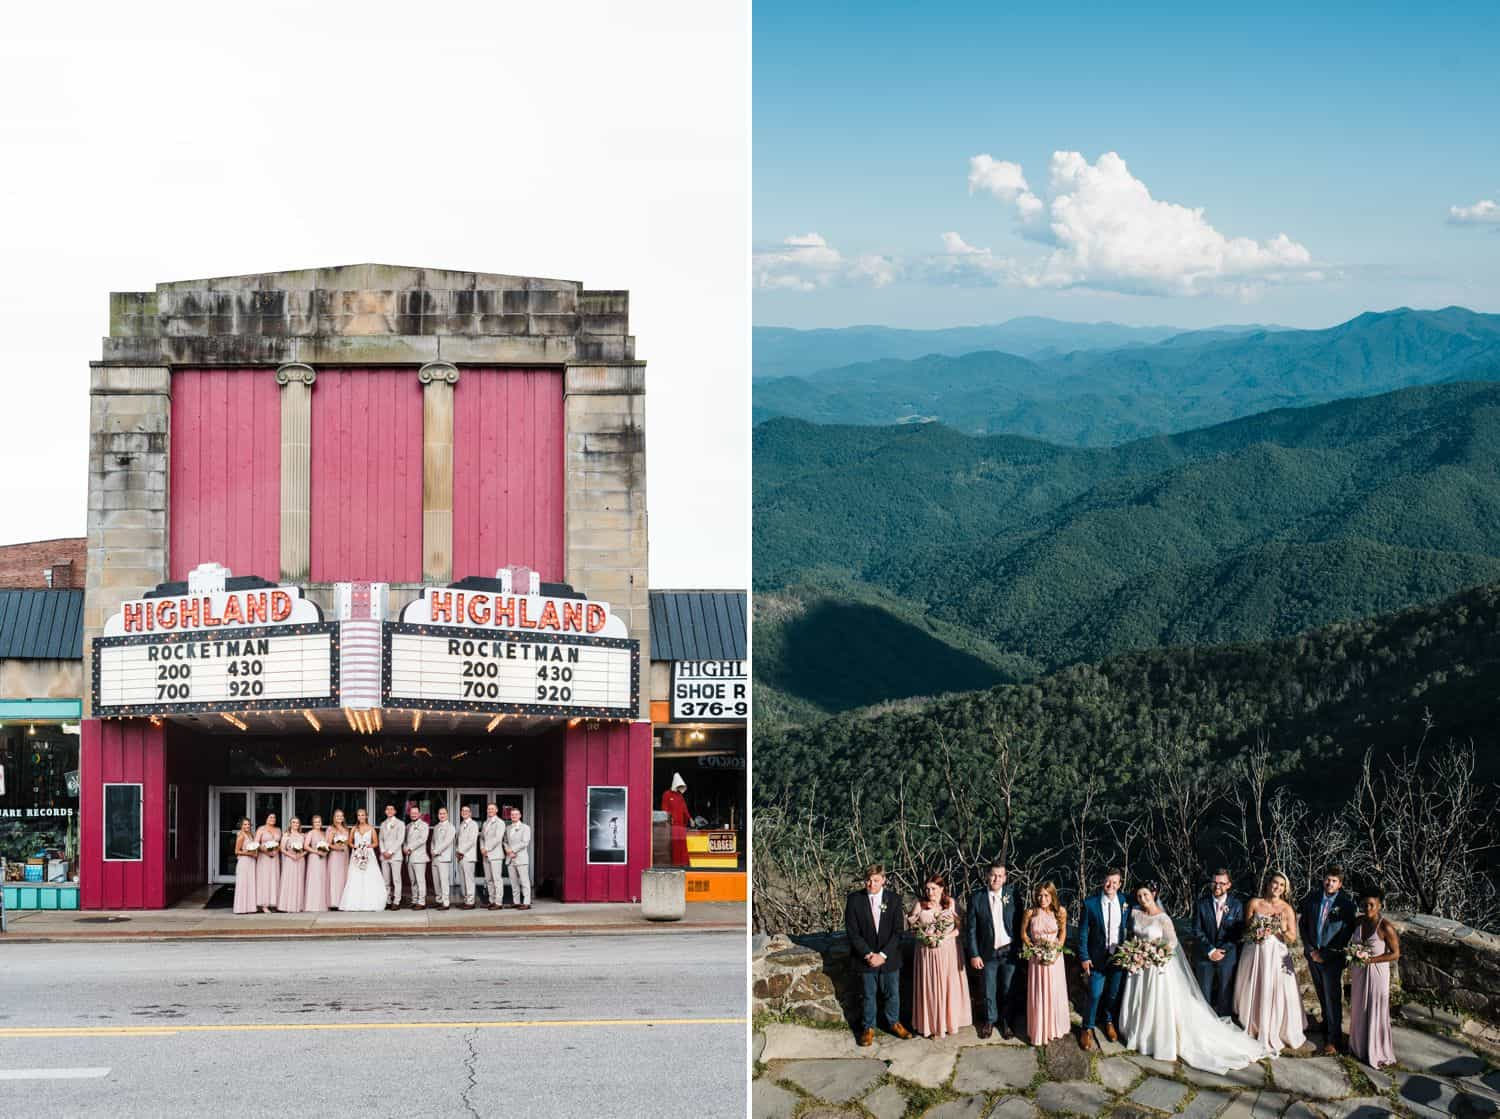 Wedding parties pose in front of their venues.